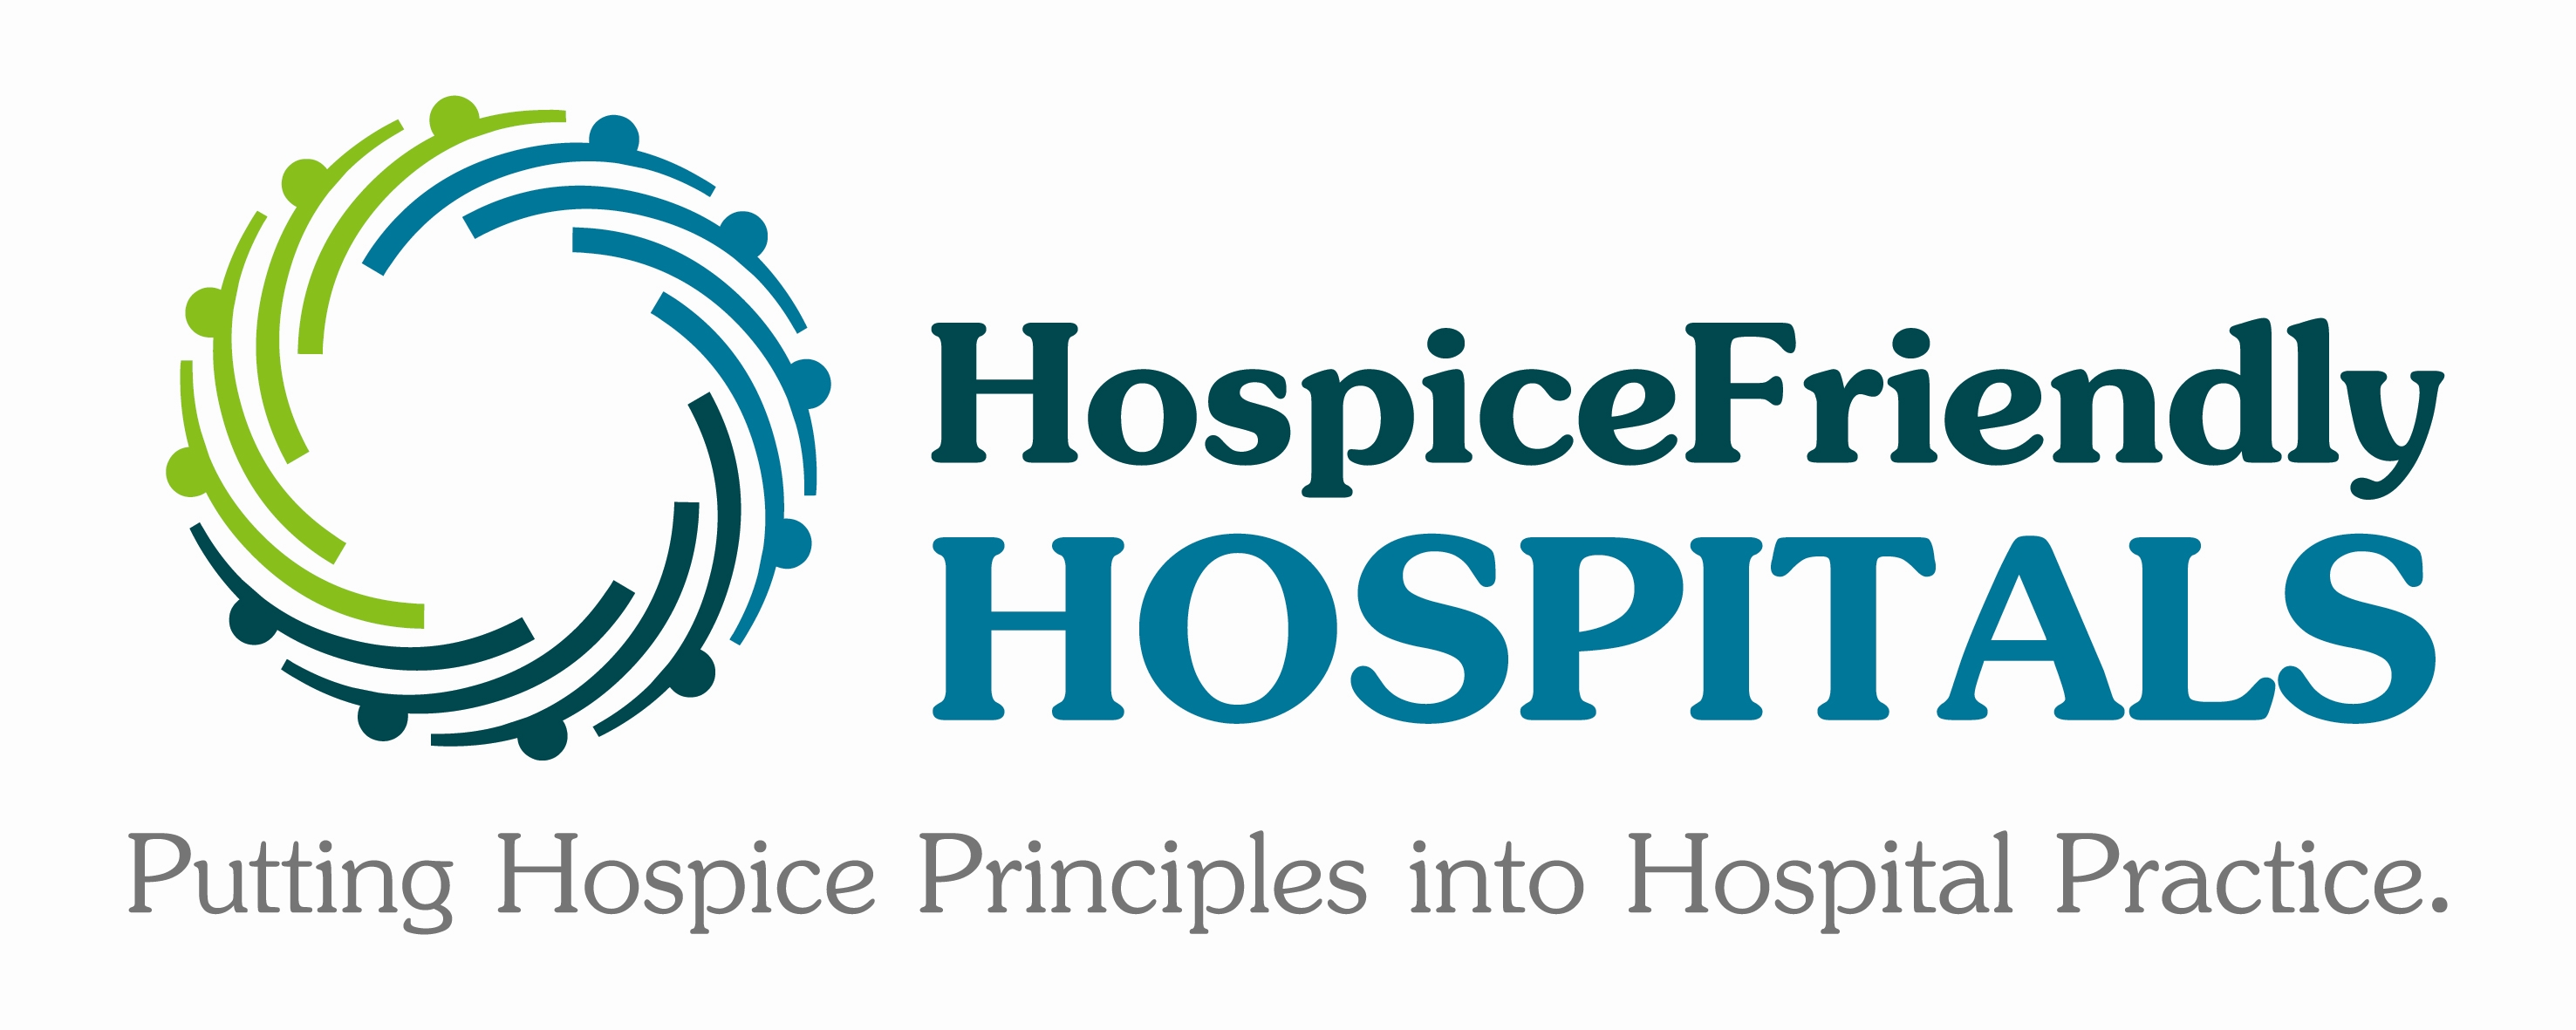 hospice friendly hospitals 171 logos amp brands directory